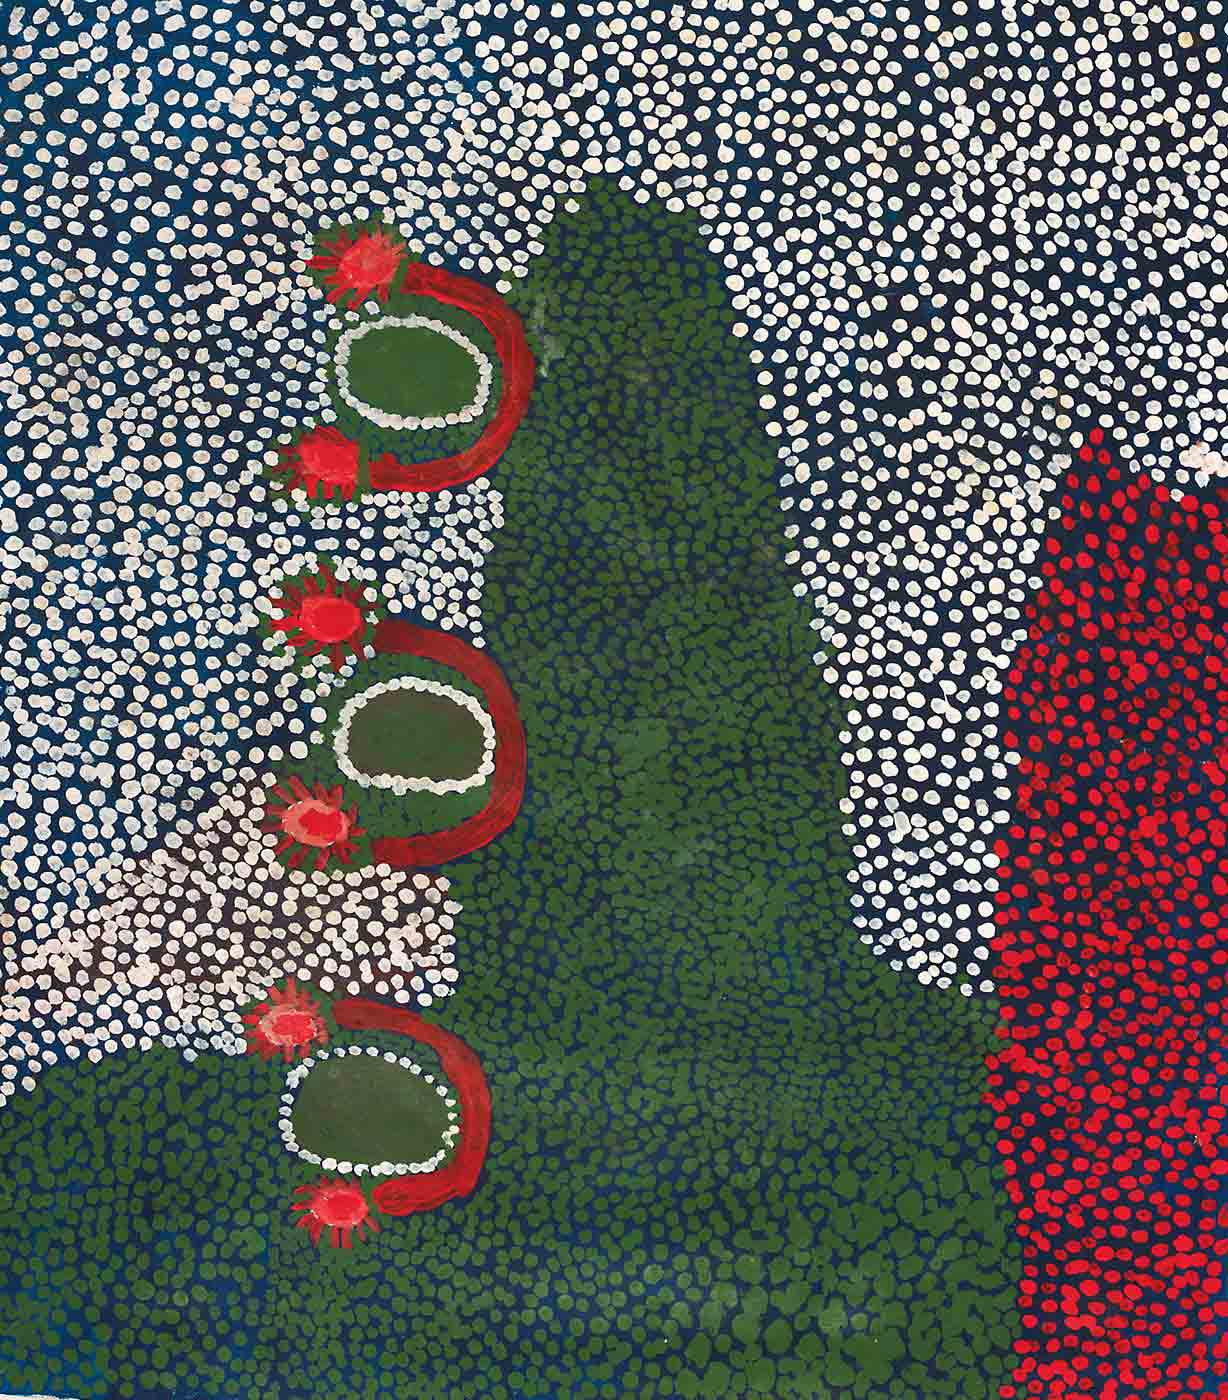 A dot painting made with acrylic paint on canvas. The painting has a dark blue background with three central oval shapes in green. Around each of these green oval shapes is an outline of white dots. Around that outline is a red semi circle with sun shapes at either end. Dots fill the rest of the painting. One side has white dots and the other side has a section of green dots and a smaller section of red dots in the corner. The different coloured dots meet in the centre creating a wavy line. - click to view larger image